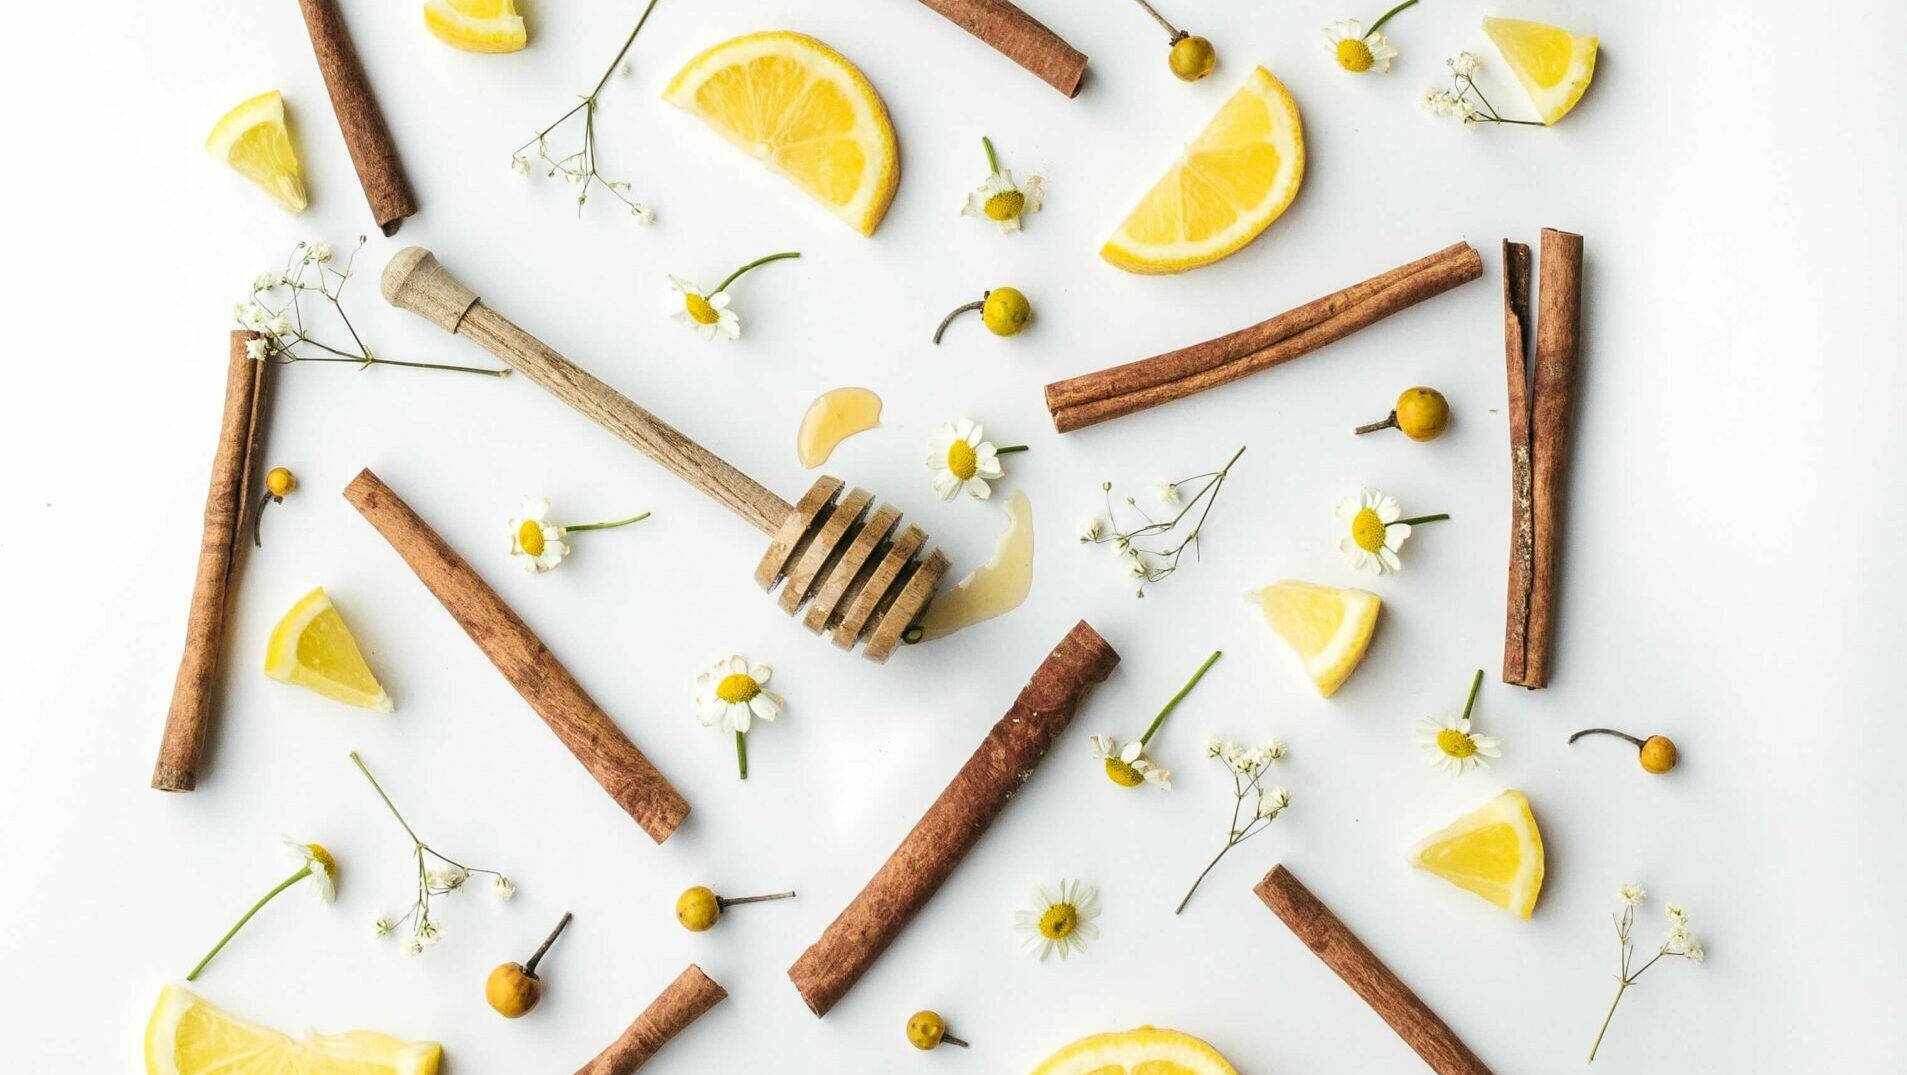 lemon slices, cinnamon sticks, honey comb, flowers, herbs